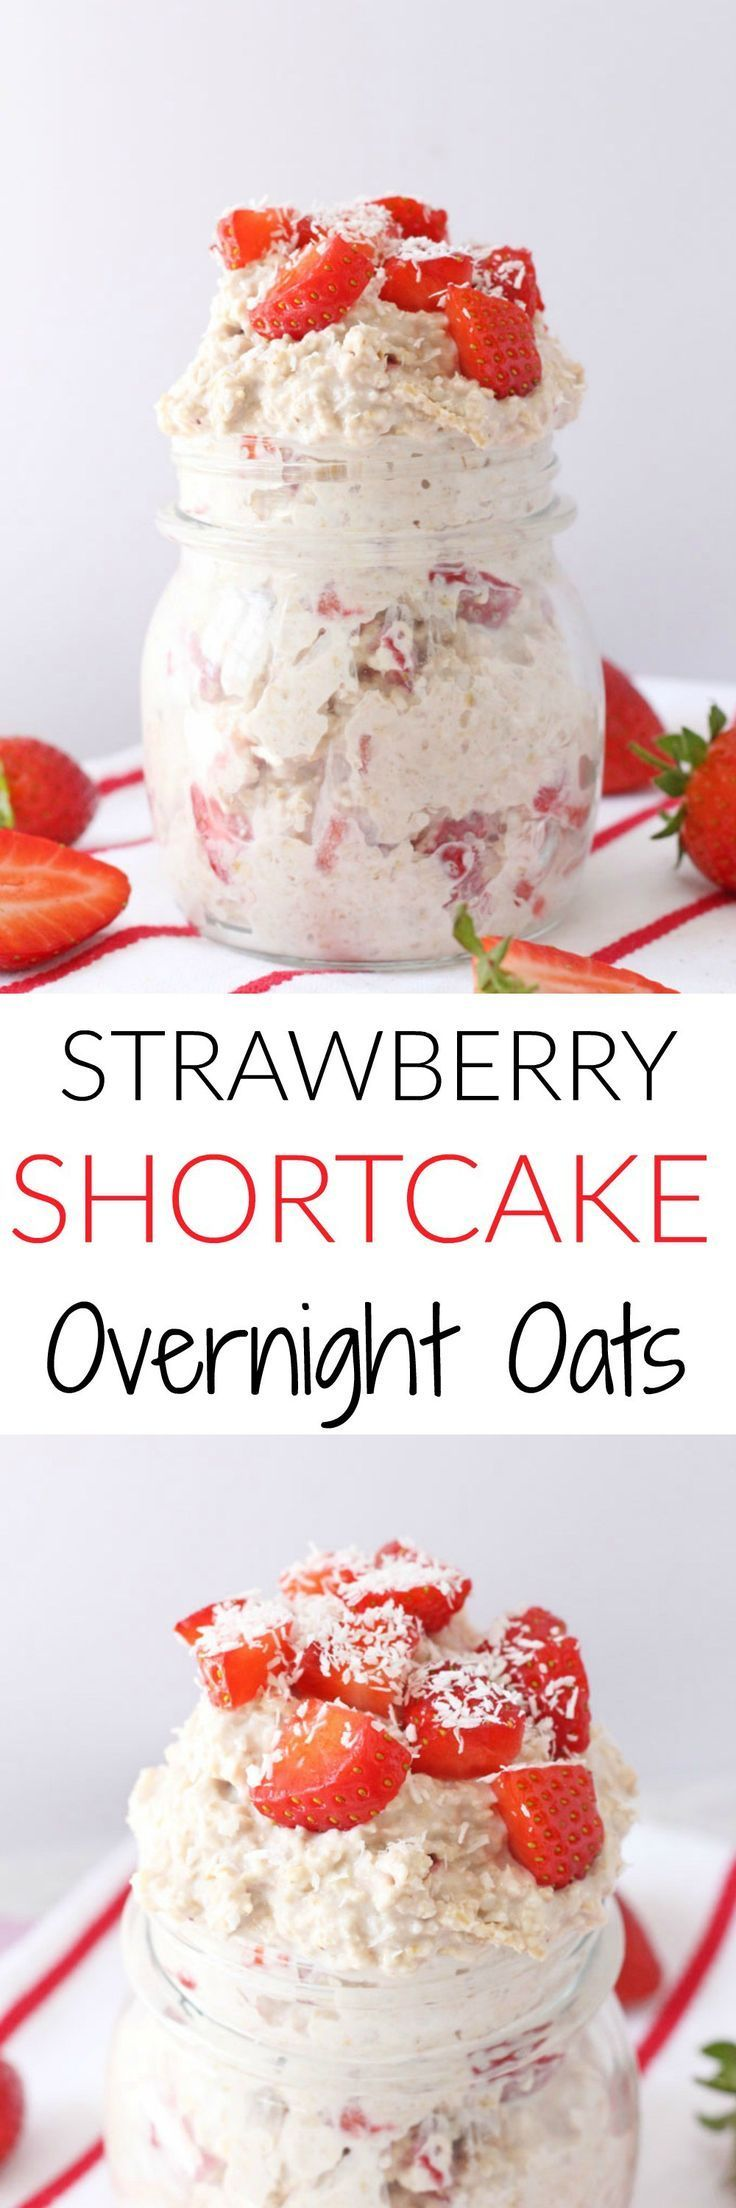 So easy to make and super healthy, these Strawberry Shortcake Overnight Oats honestly taste like strawberry ice cream and are sure to be a hit with the kids!